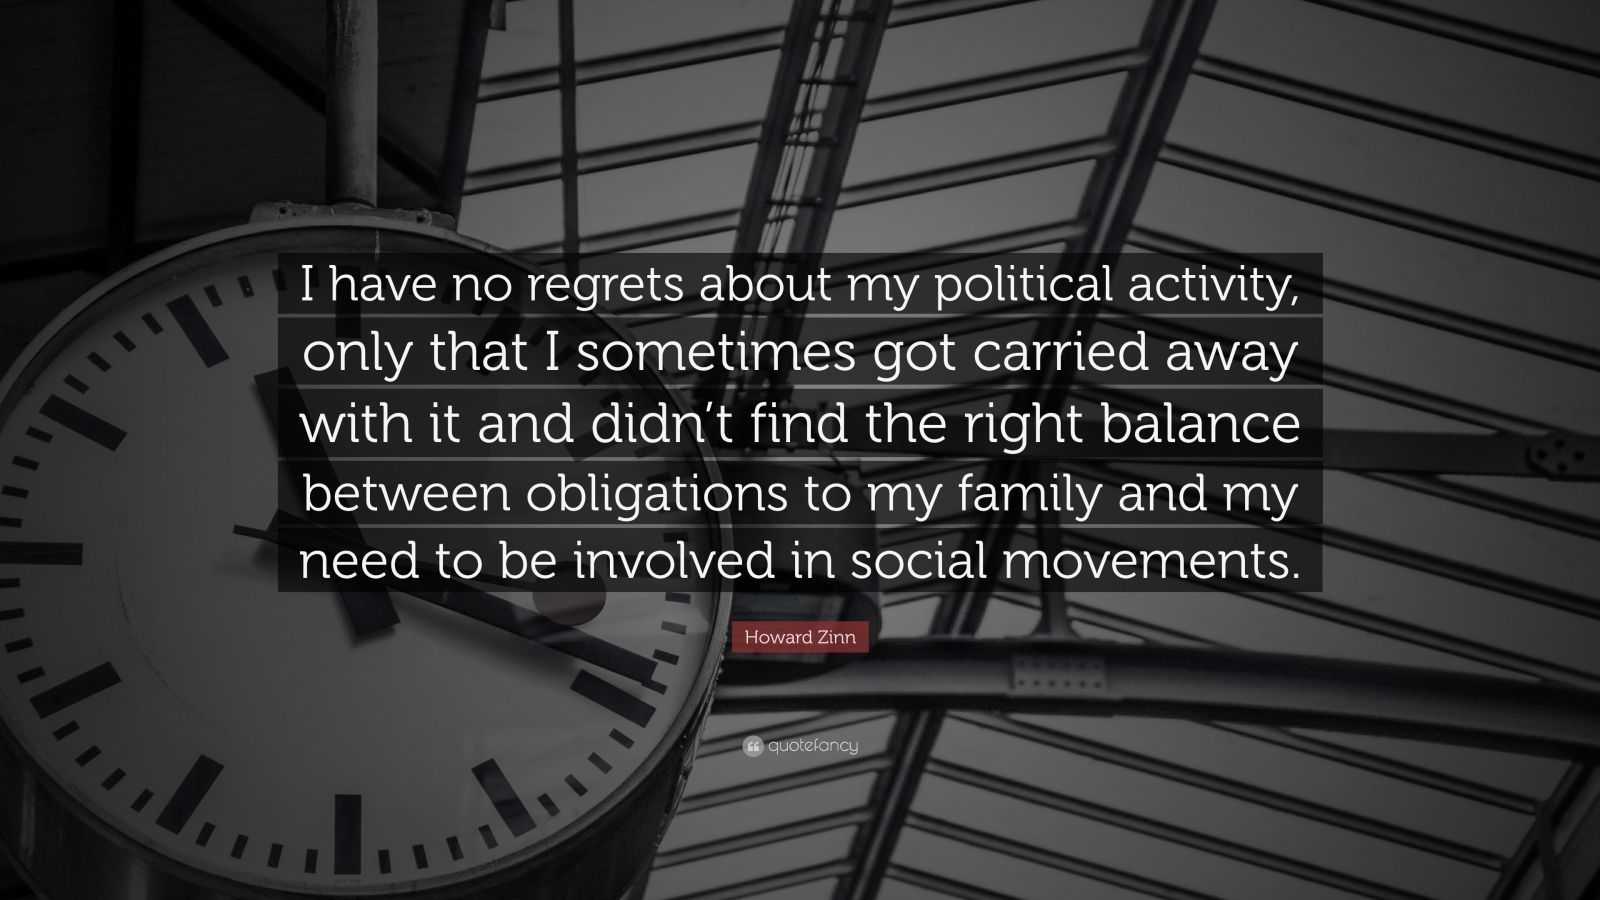 """Howard Zinn Quote: """"I have no regrets about my political activity, only that I sometimes got carried away with it and didn't find the right balance between obligations to my family and my need to be involved in social movements."""""""